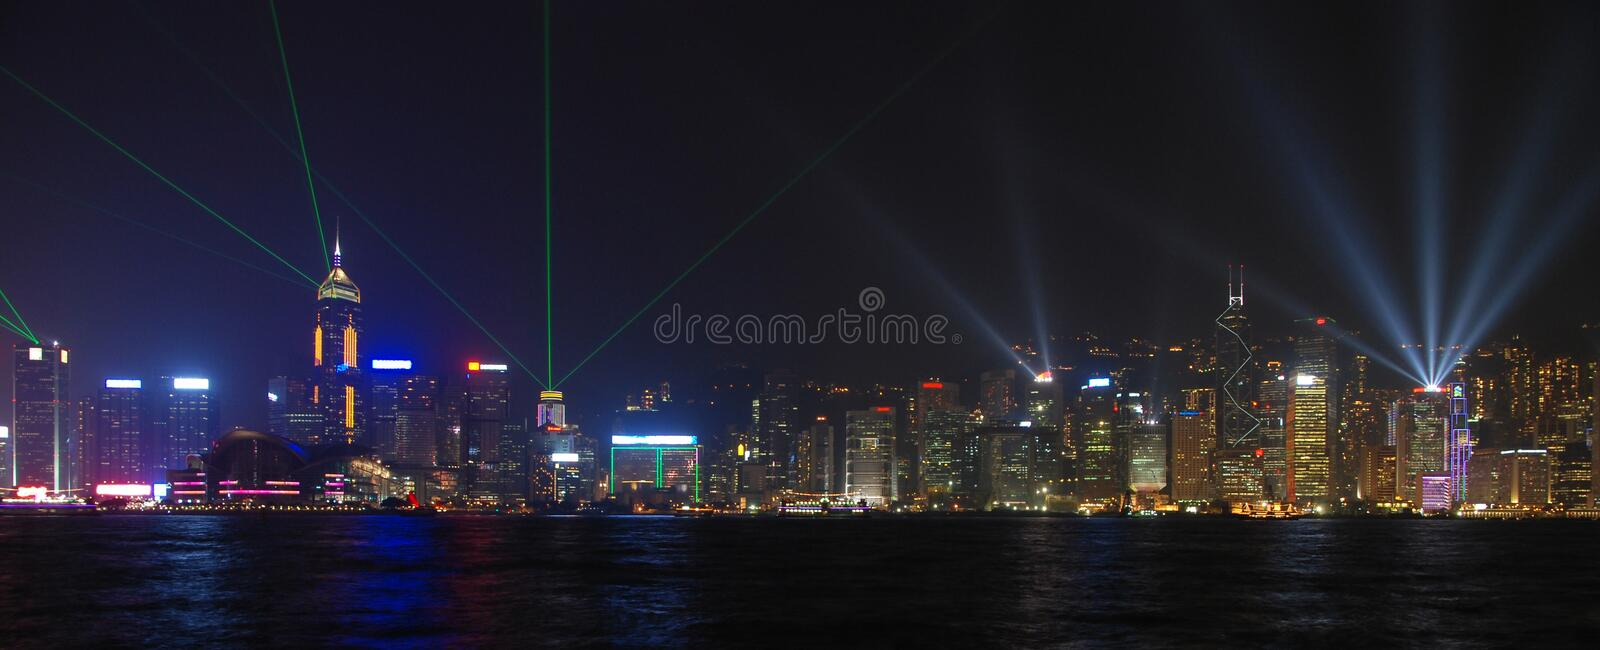 Laser show in Hong Kong